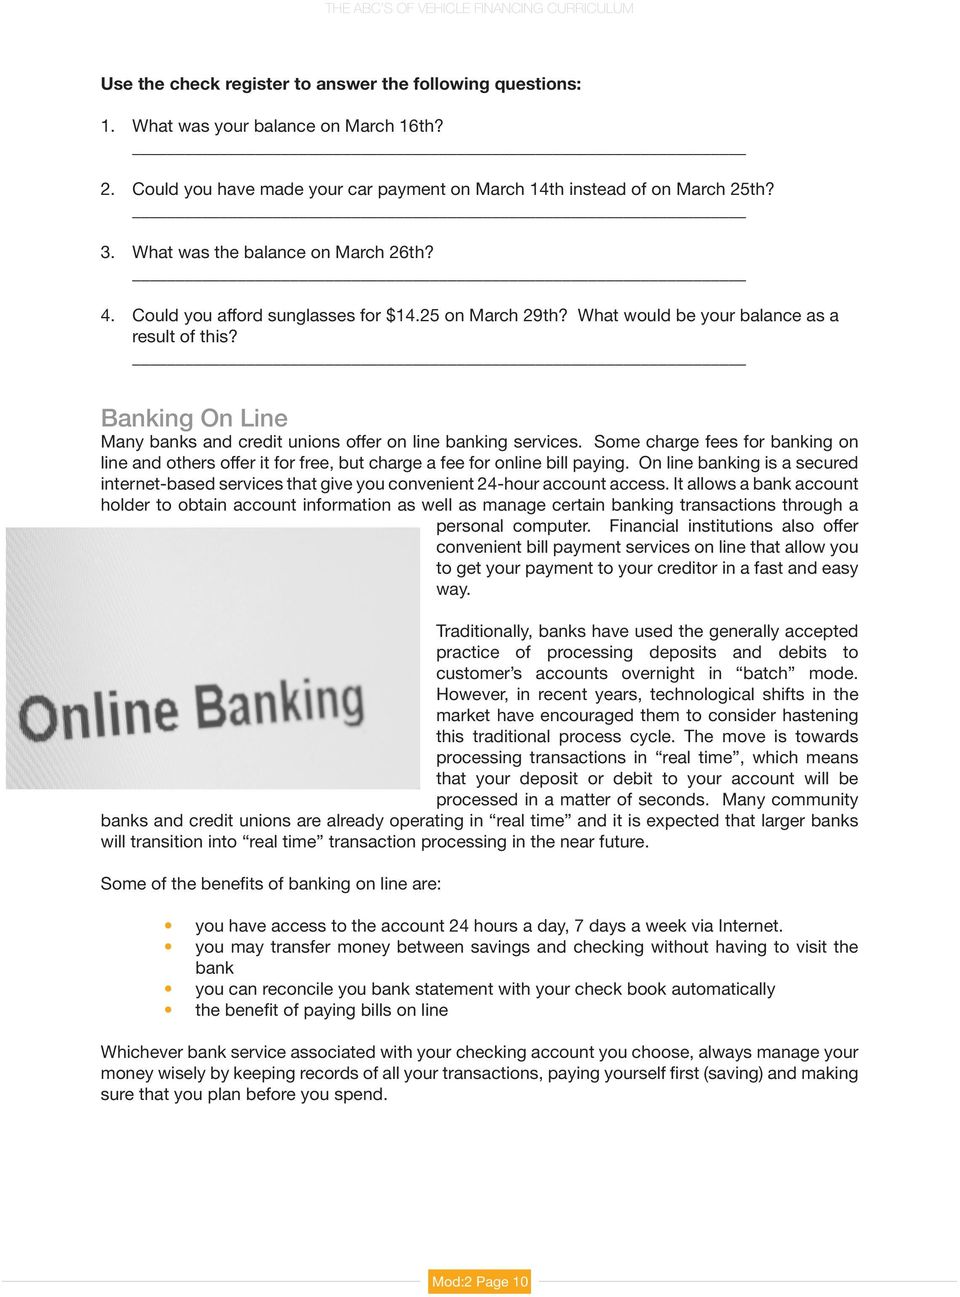 Banking On Line Many banks and credit unions offer on line banking services. Some charge fees for banking on line and others offer it for free, but charge a fee for online bill paying.